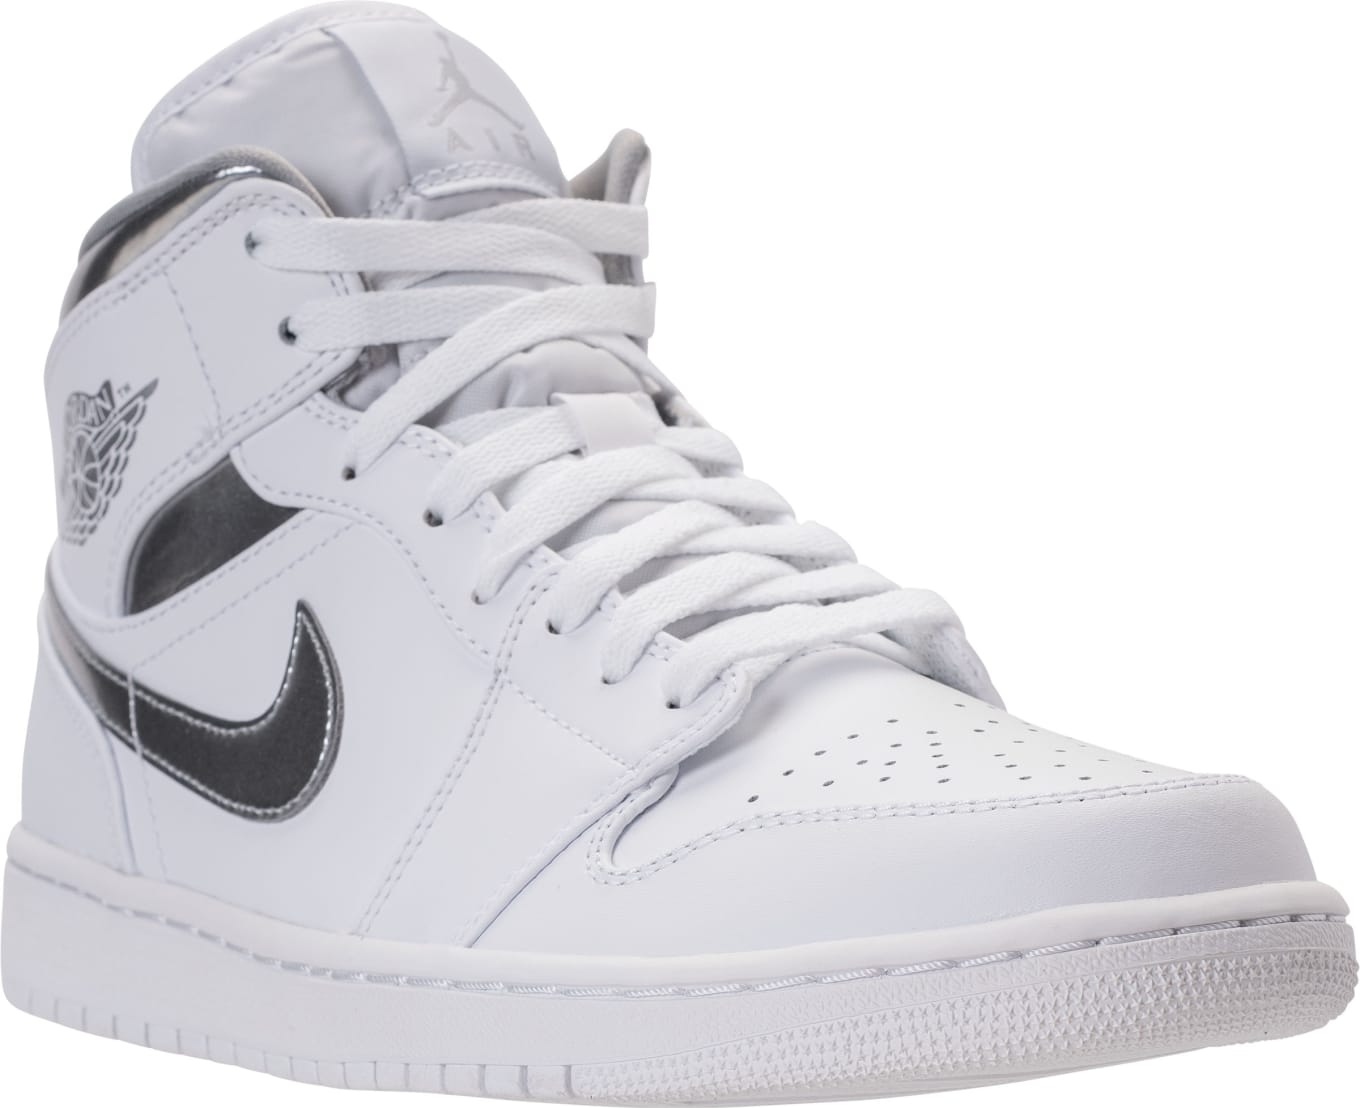 312b636acb5e30 Another  Metallic  Air Jordan 1 Is Available. The  Pure Money  Mid is  already in stores.